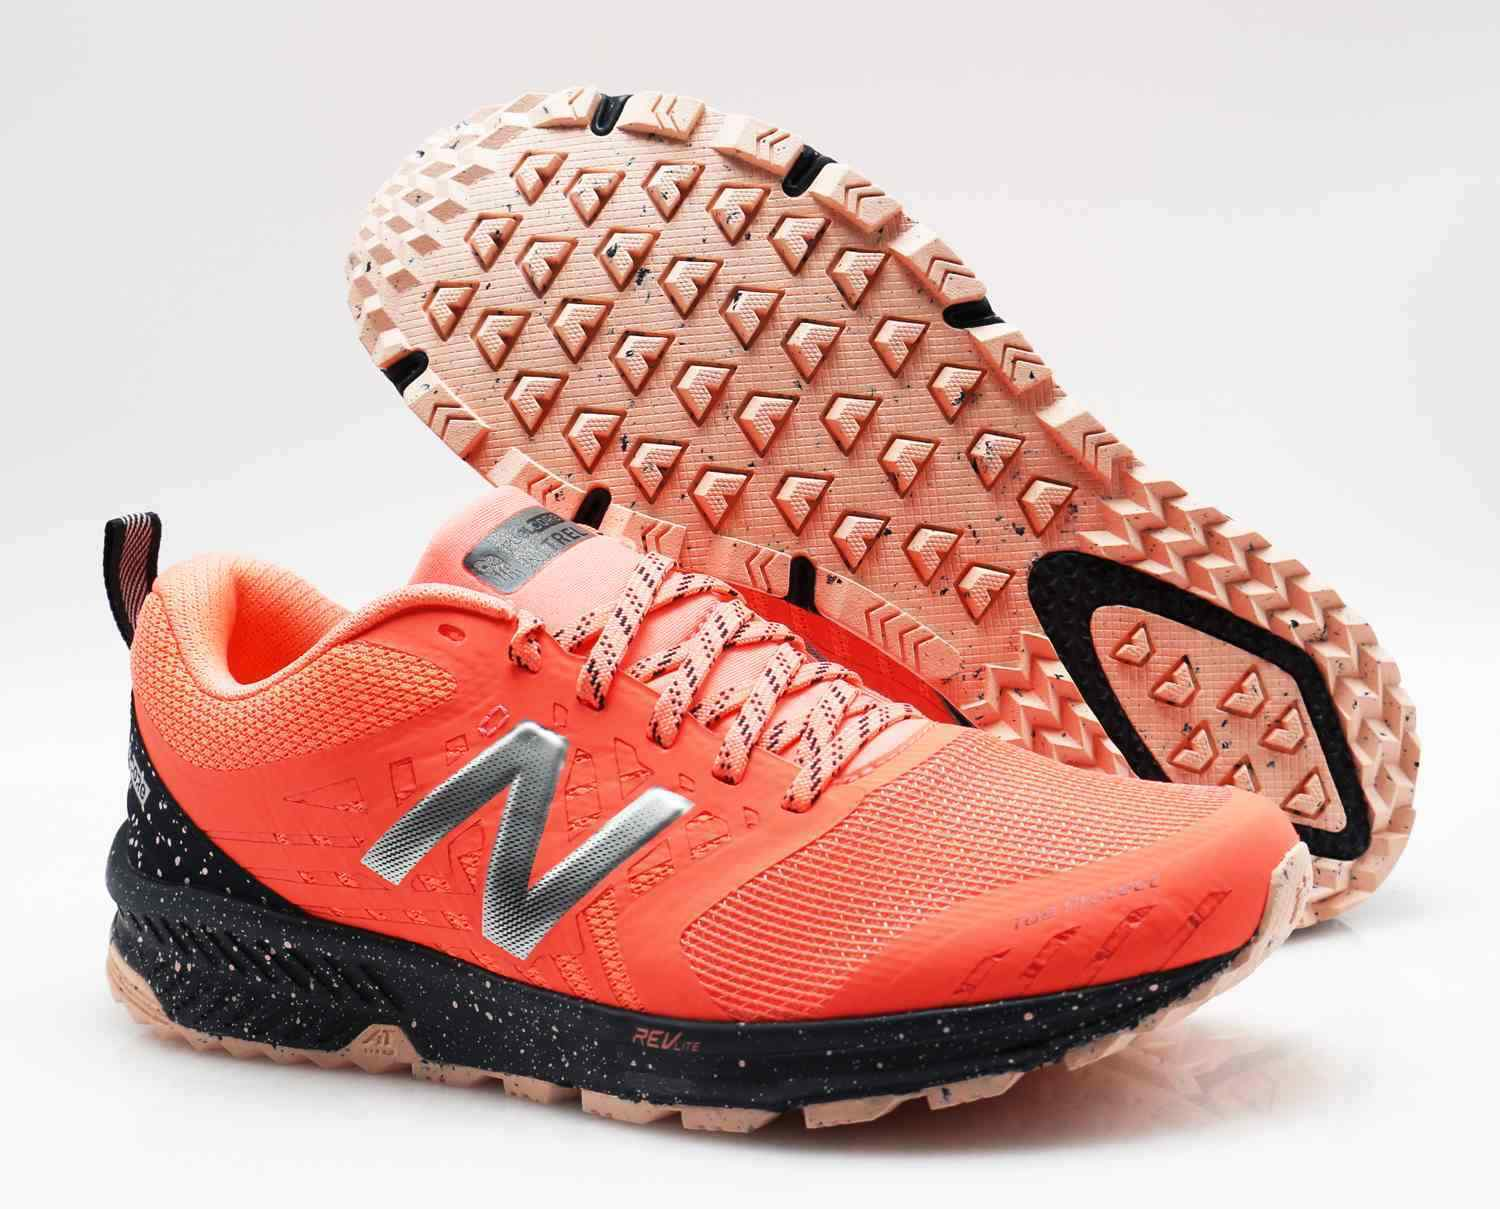 New Balance wtntrrf 1 Running Chaussures De Course Baskets b19 223 taille 37,5